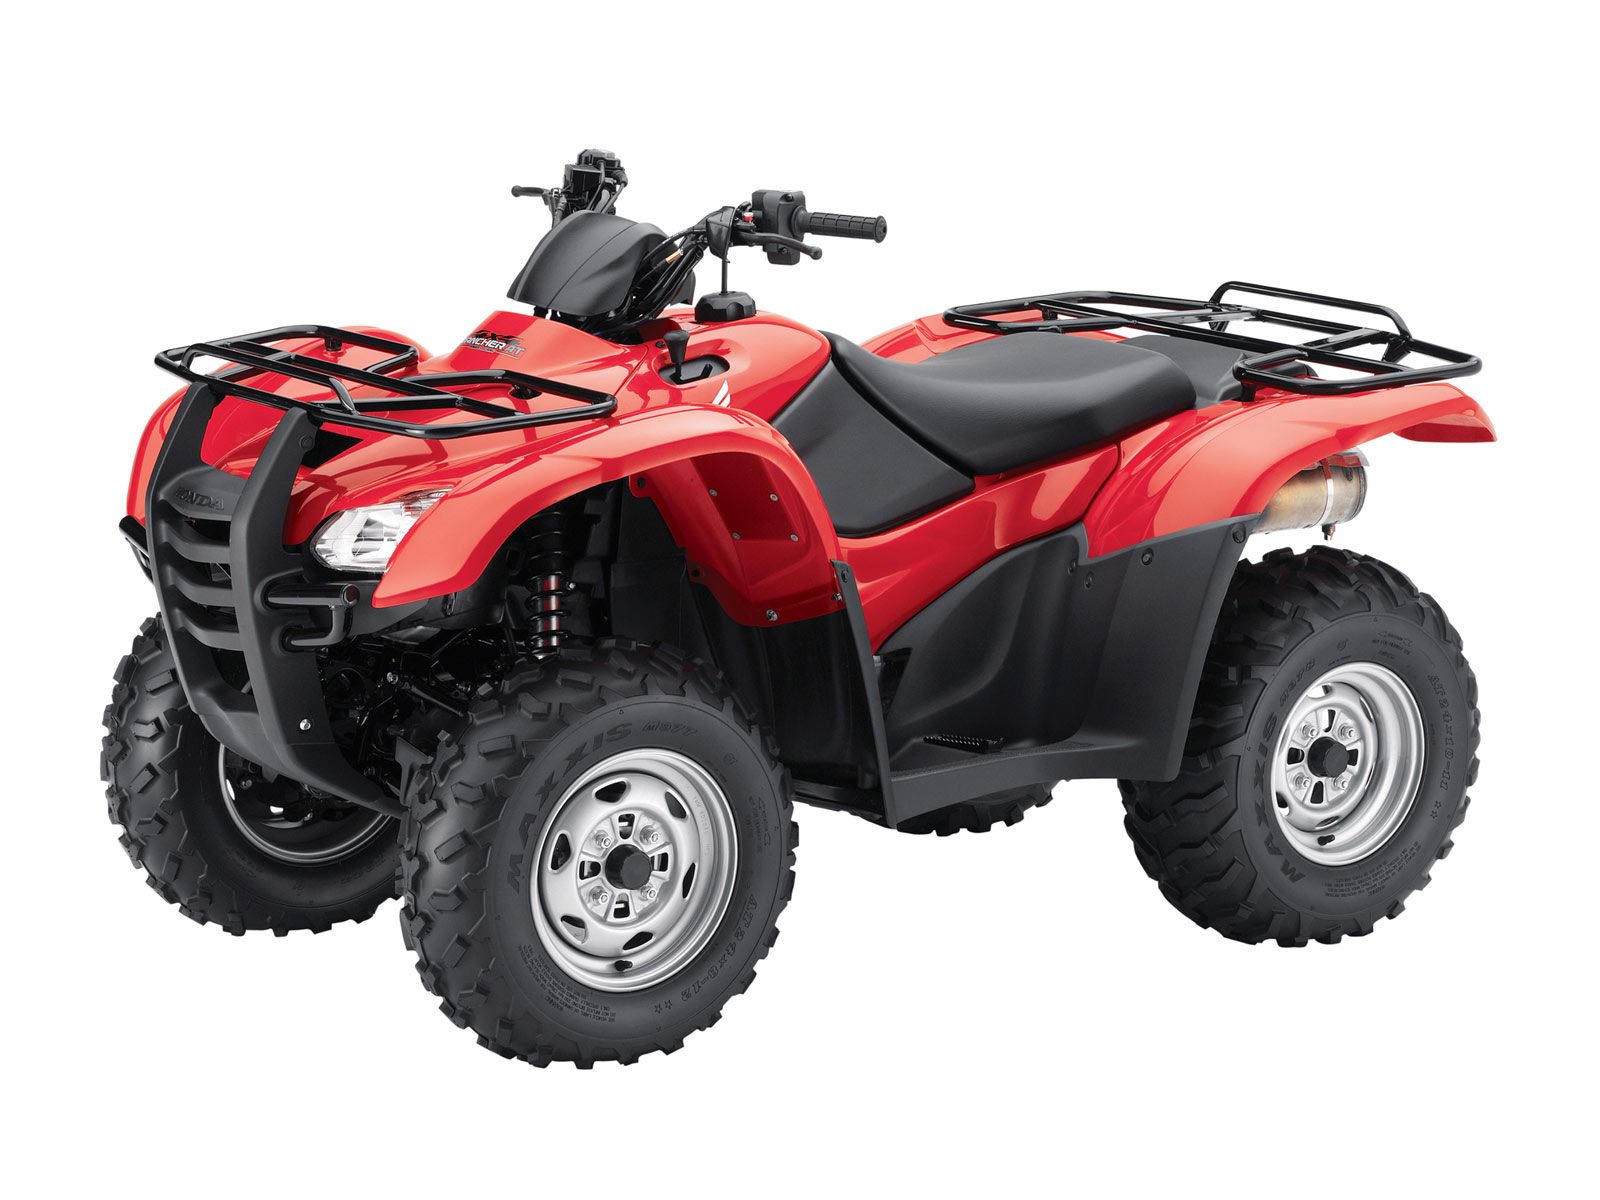 2010 Honda Fourtrax Rancher At Accident Lawyers Information